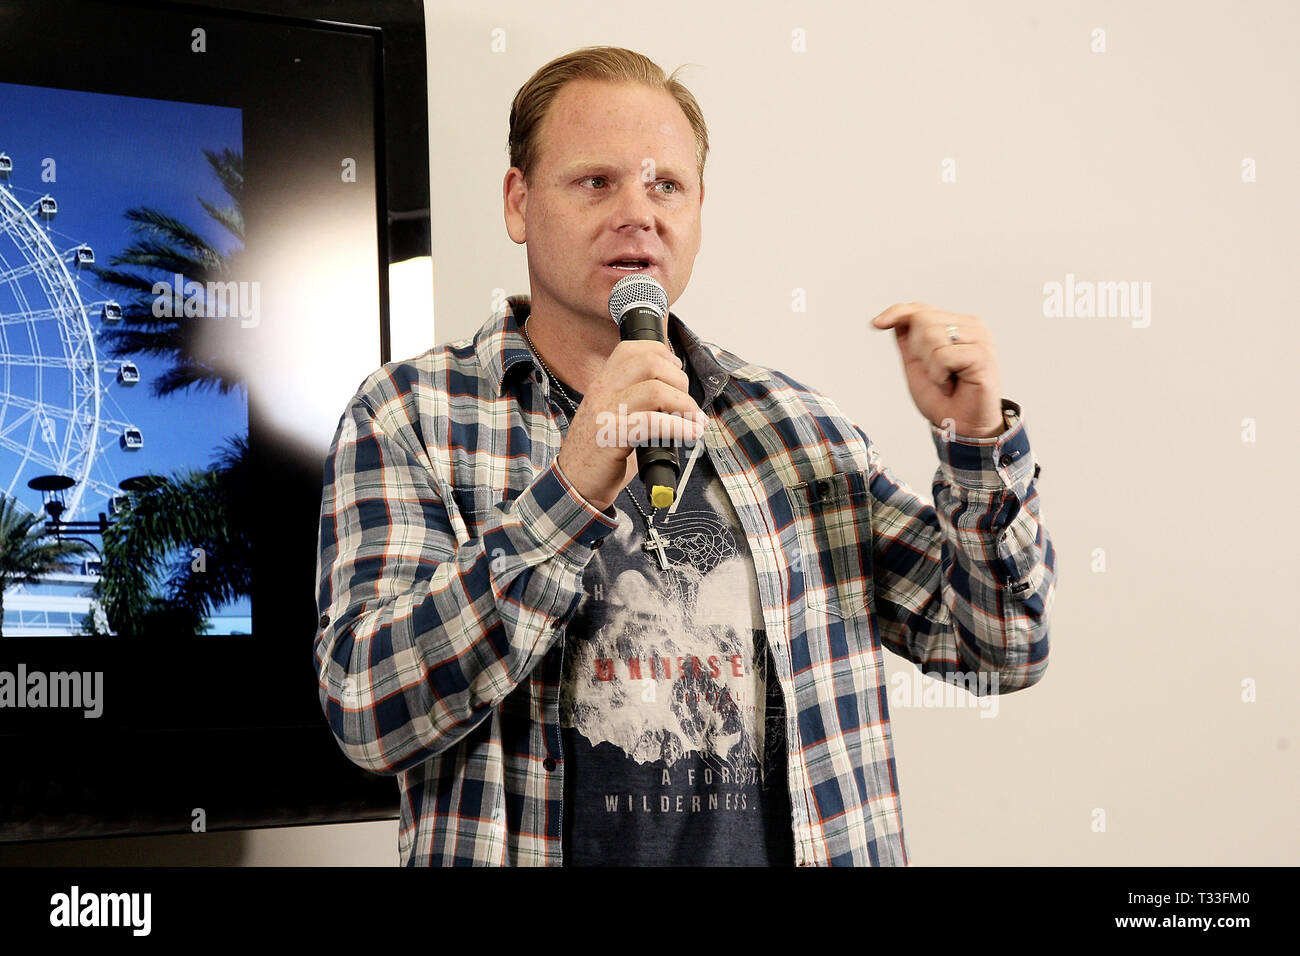 New York, NY - April 13:  Nik Wallenda, speaks at a press conference where he revealed his next feat will take place on April 29, 2015 at the soon-to-be-unveiled Orlando Eye, located in Orlando, Florida.. Wallenda will attempt to walk on top of the giant observation wheel without a tether and without a wire while it is moving. Standing 400 feet tall, the Orlando Eye forms part of the I-Drive 360 entertainment complex, which celebrates its grand opening this month and is located in the heart of OrlandoÔs newly revitalized International ÔI-DriveÔ District. The press conference took place on Apri Stock Photo